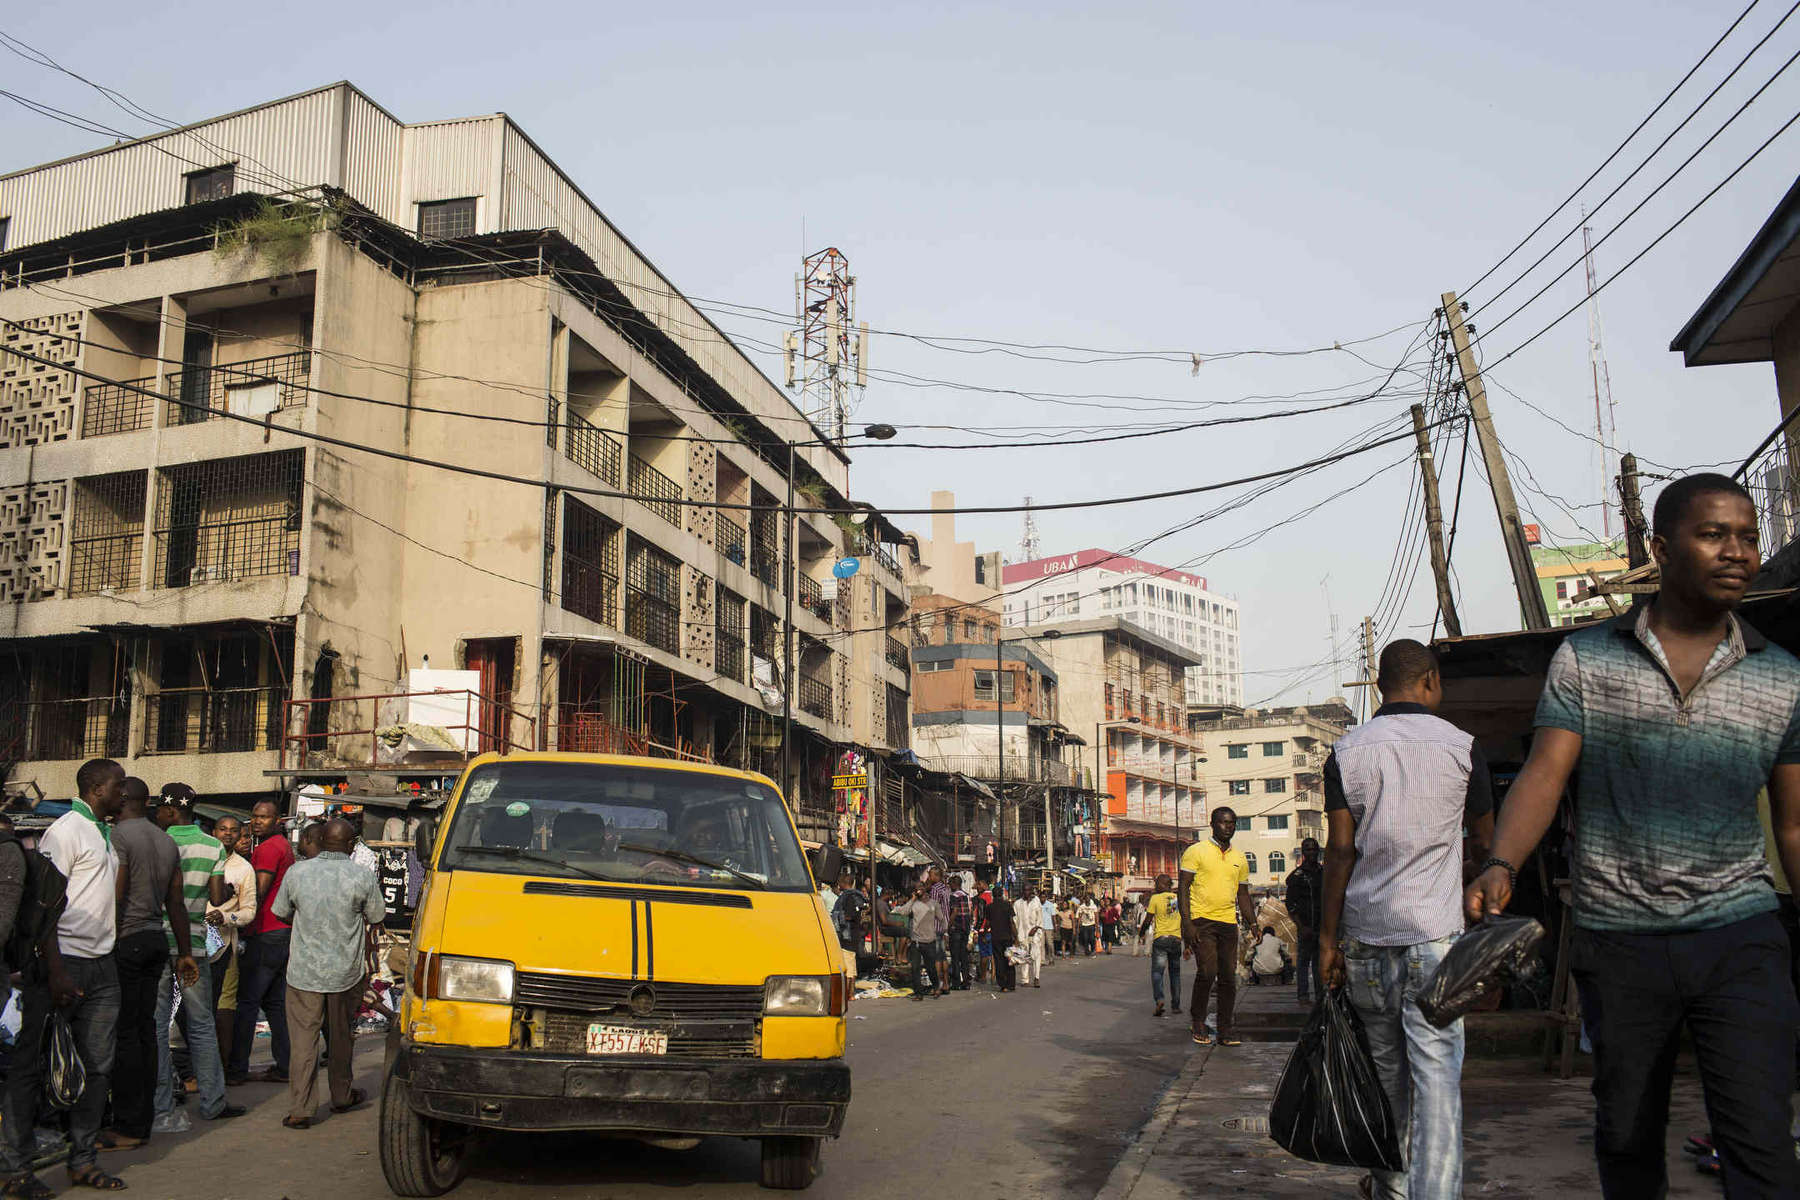 Nigeria's economy is growing quickly but despite the massive wealth, many people still work in the informal economy and hawk goods on the side of the road or in overcrowded marketplaces.